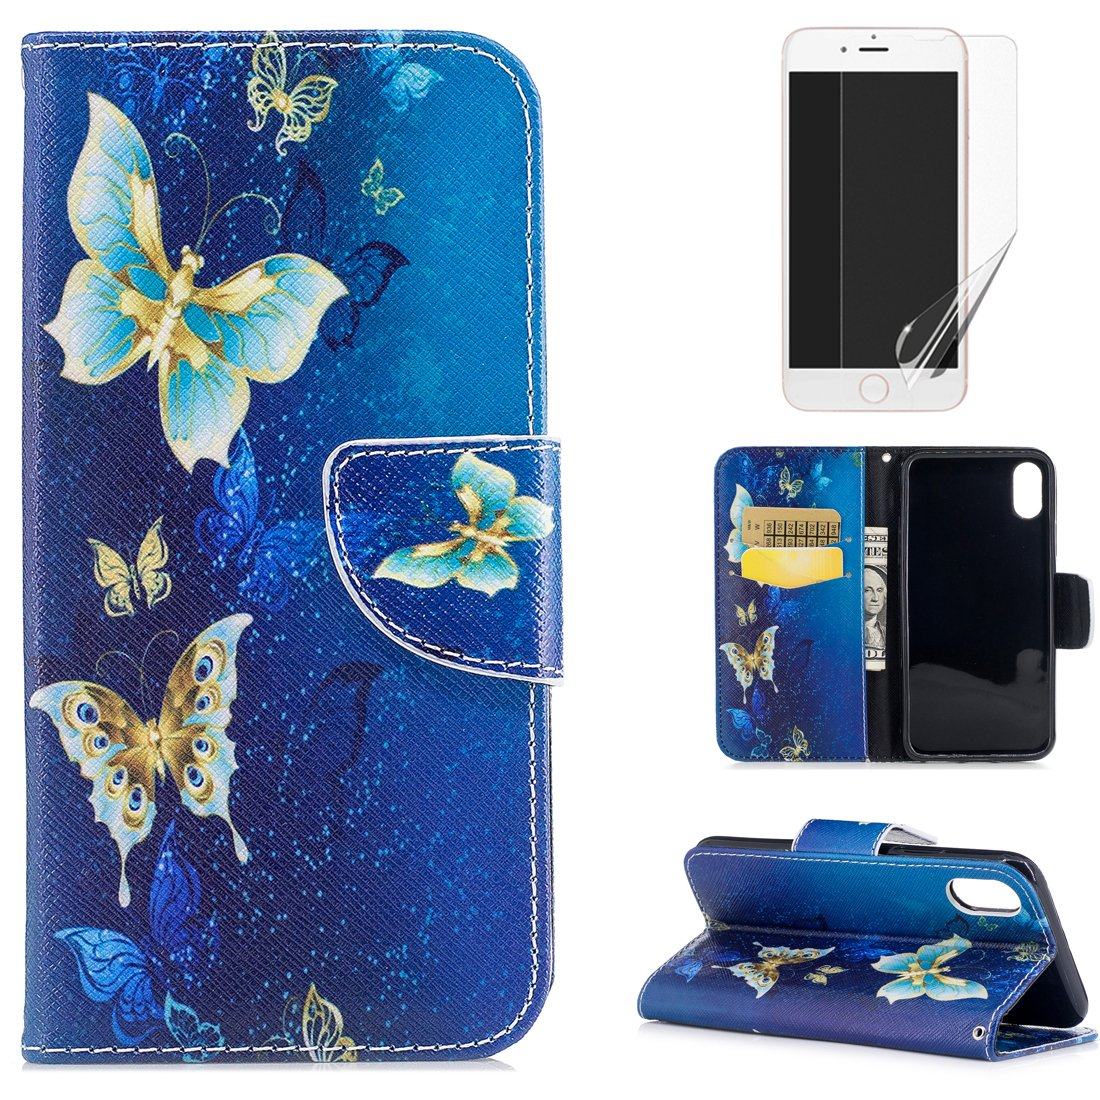 For iphone X Wallet Case and Screen Protector, OYIME [Colorful Painting] Elegant Pattern Design Bookstyle Leather Holster Kickstand Card Slots Function Full Body Protection Bumper Magnetic Closure Flip Cover with Wrist Lanyard - Cute Panda